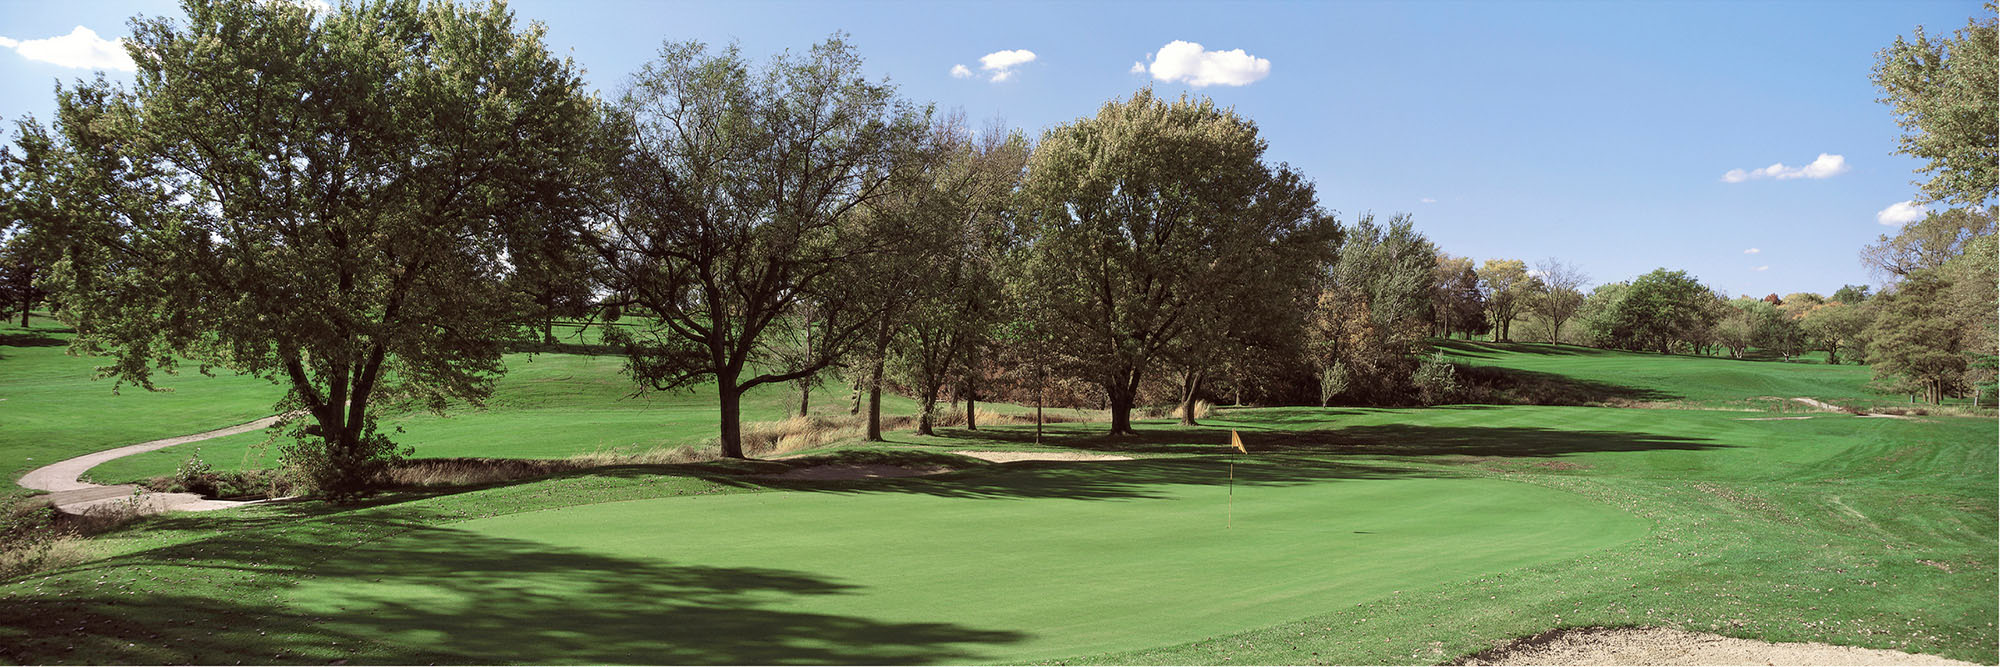 Golf Course Image - Beatrice No. 12